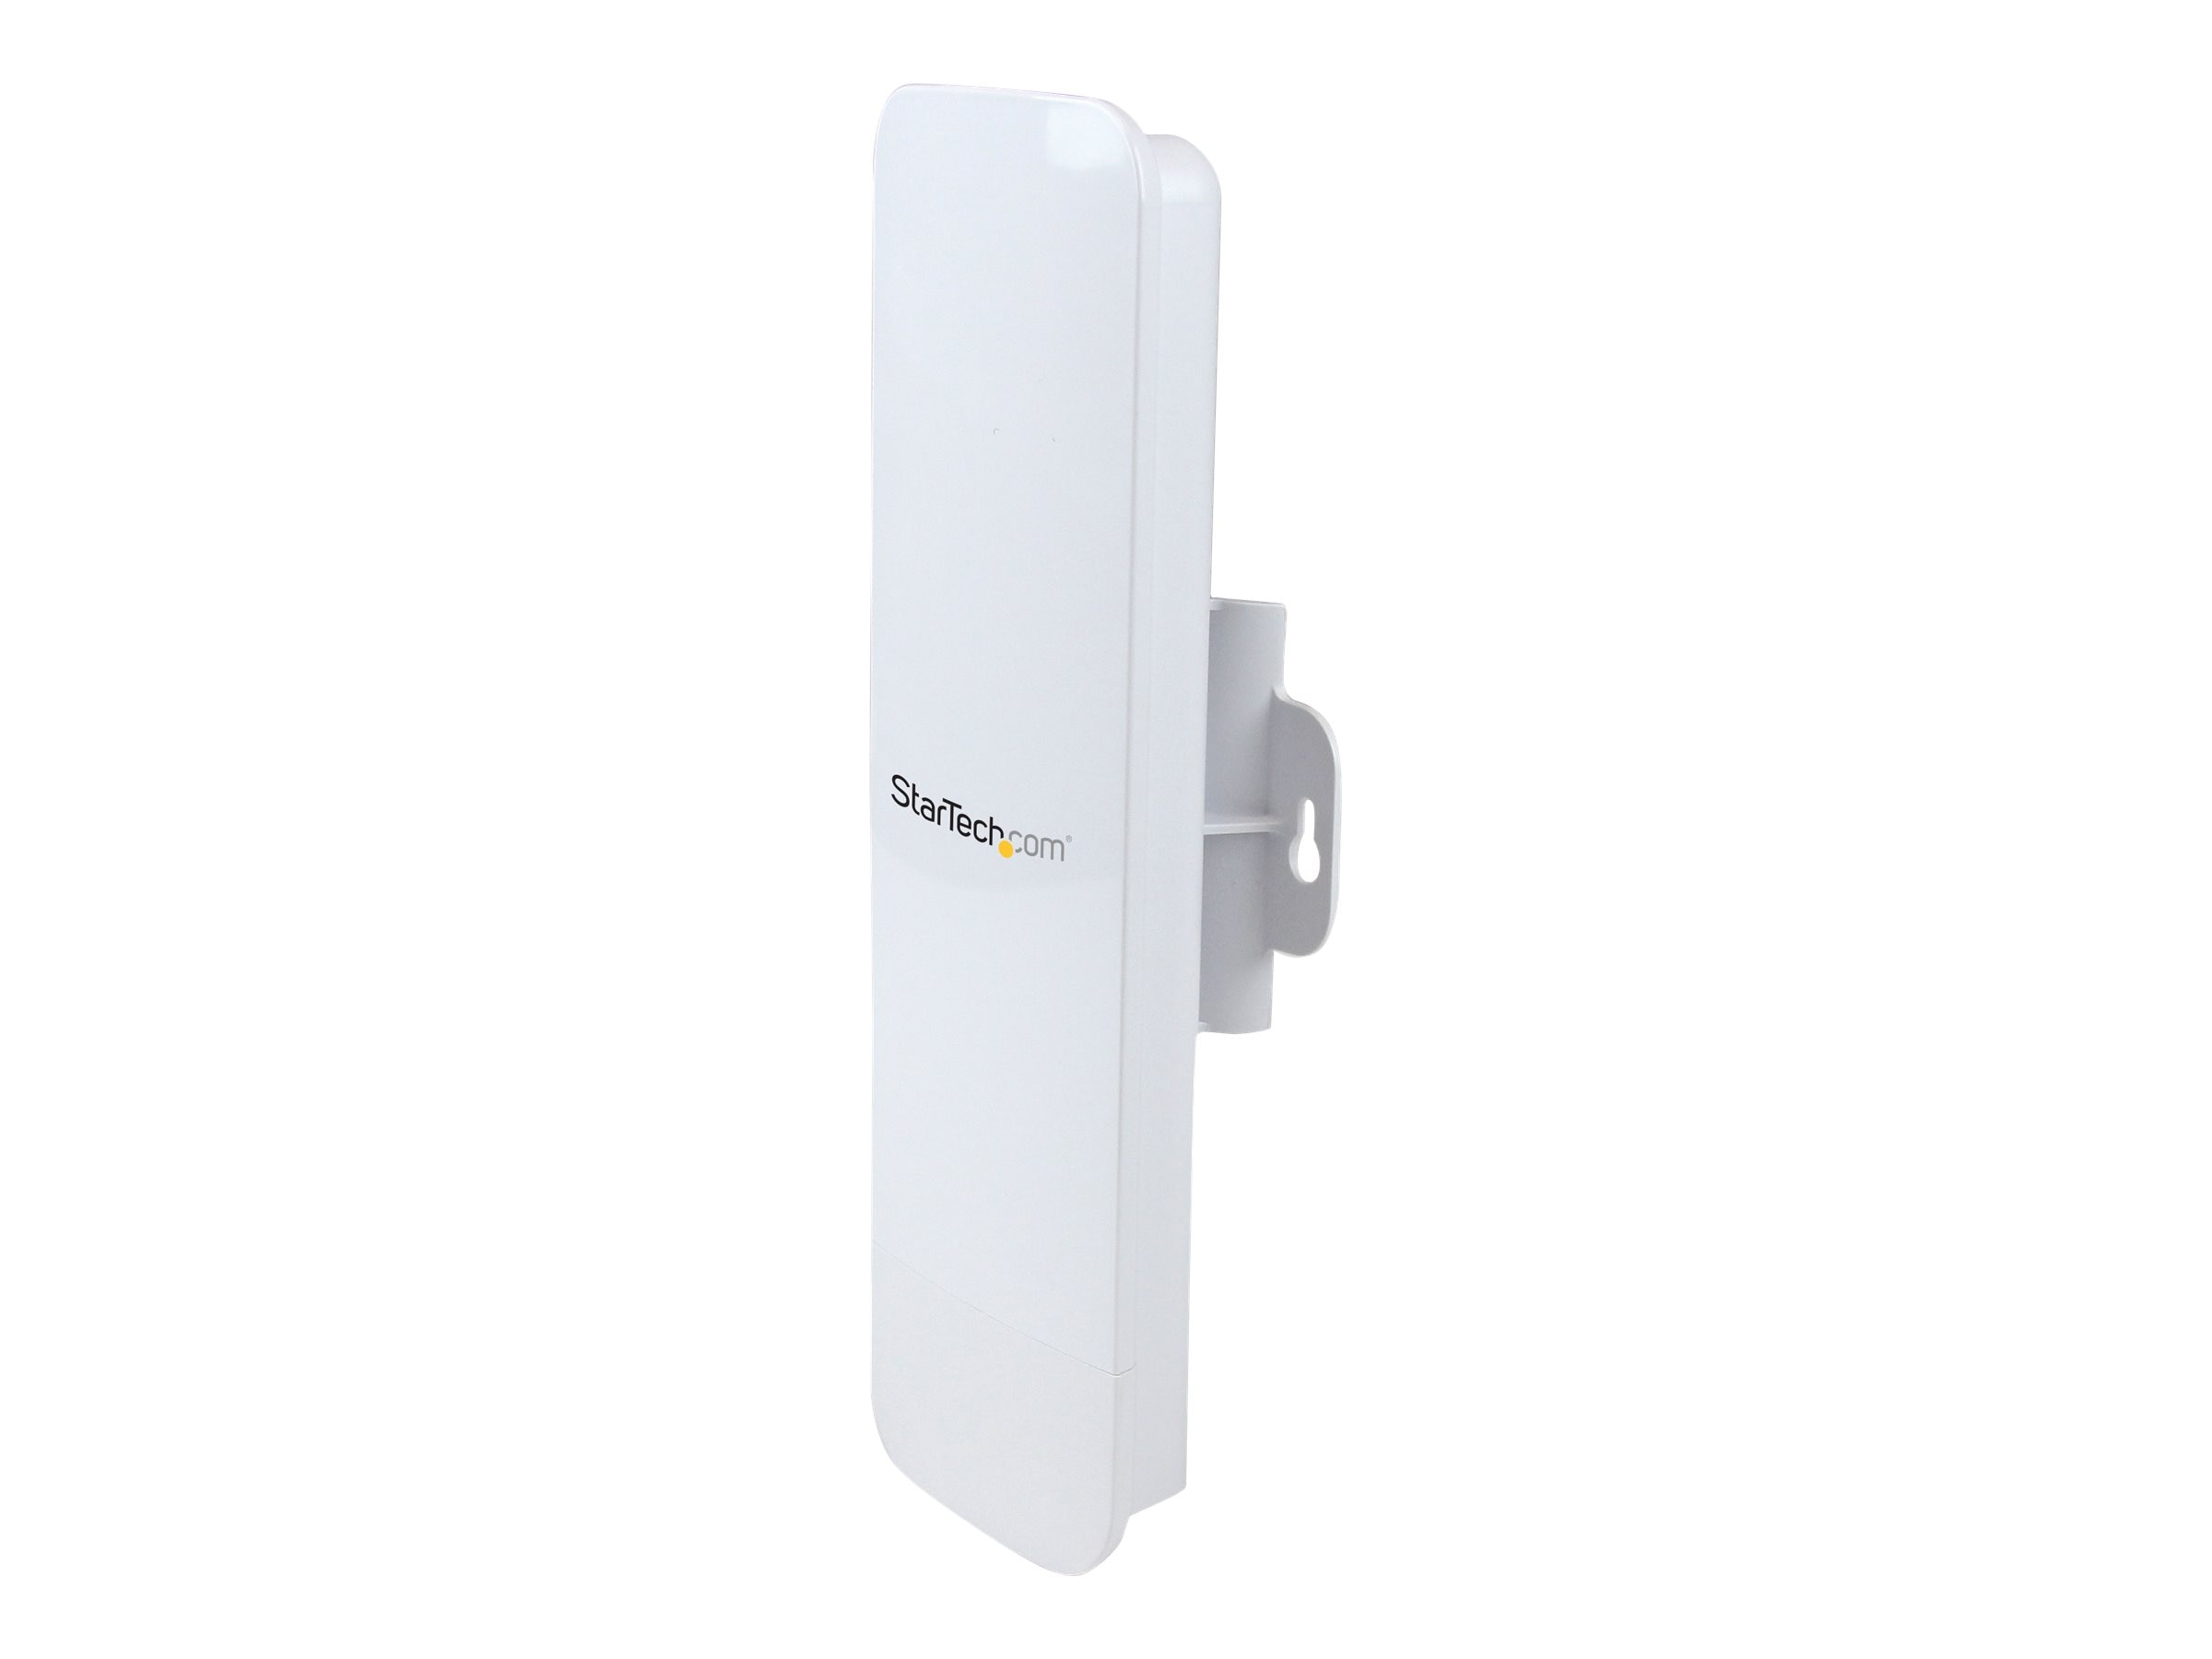 StarTech.com Outdoor 300Mbps 2T2R Wireless-N Access Point 5GHz 802.11a n PoE-Powered WiFi